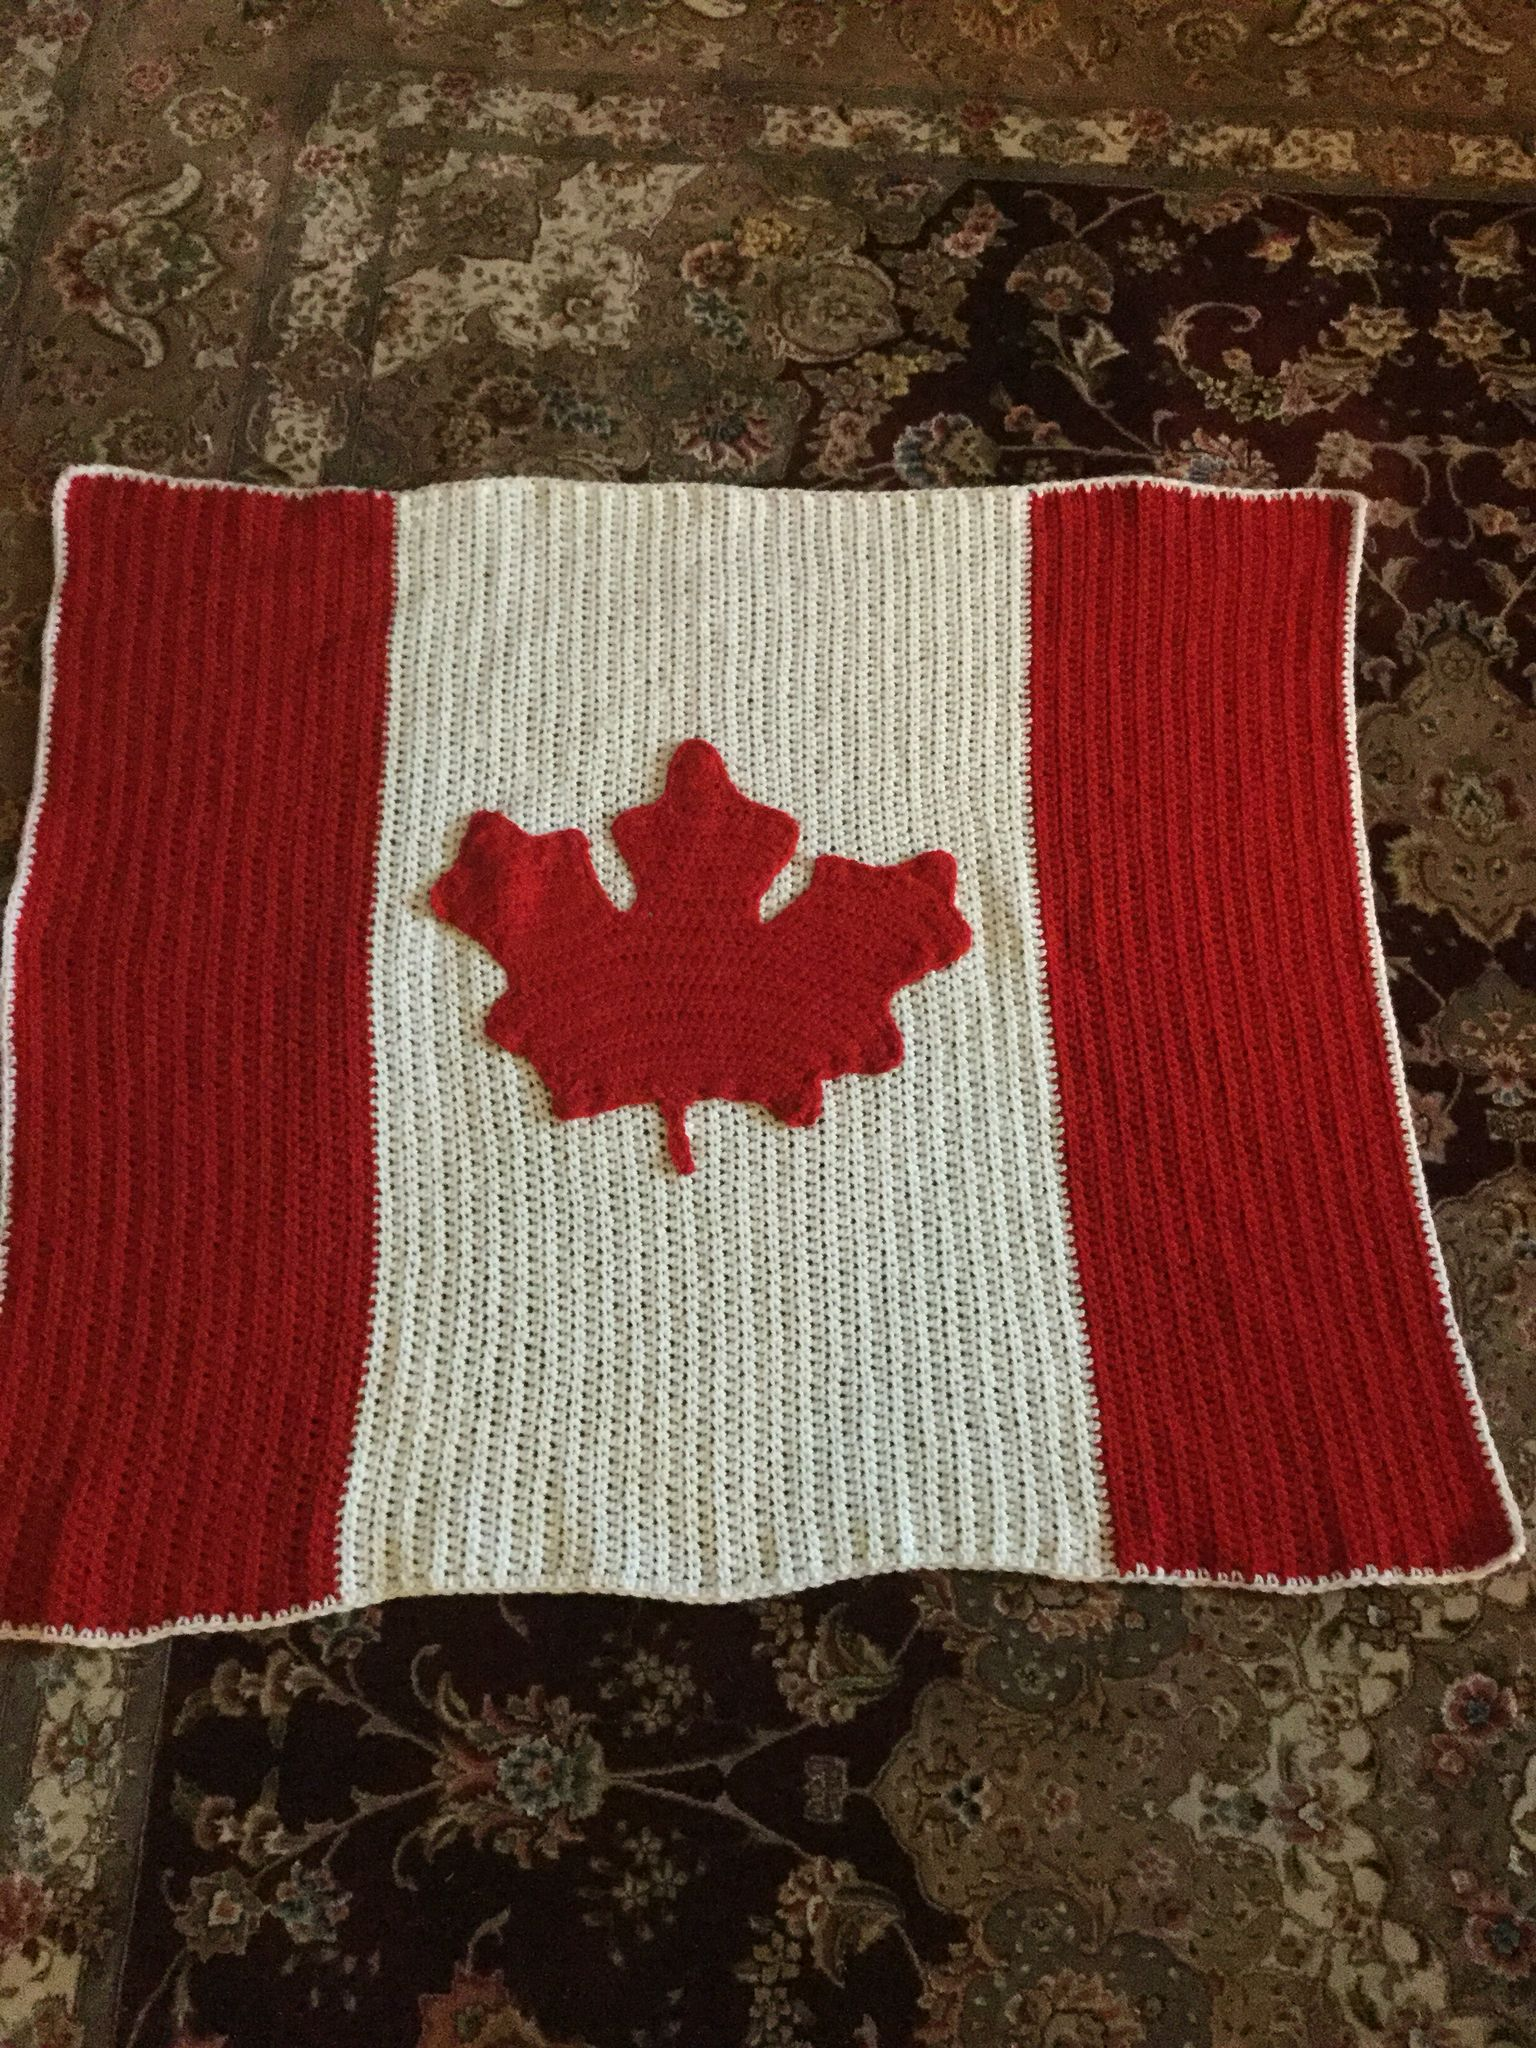 A friend wanted a Canadian flag baby blanket. I couldn't